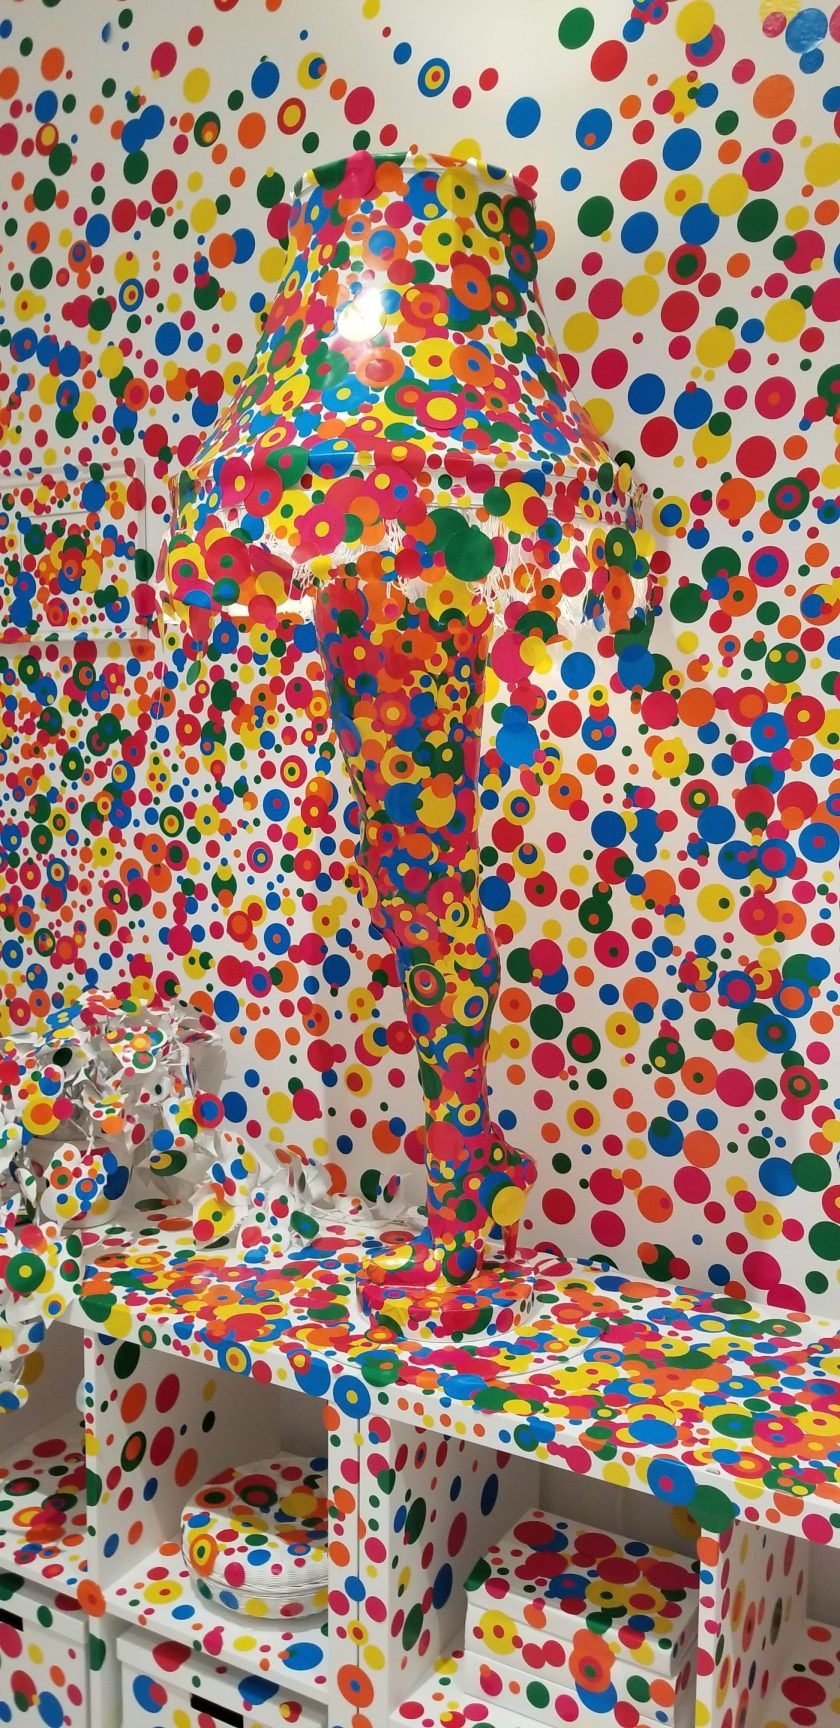 Different Date Night   Yayoi Kusama   Infinity Mirrors   Things to do in Cleveland   L'Albatros   Cheese Board